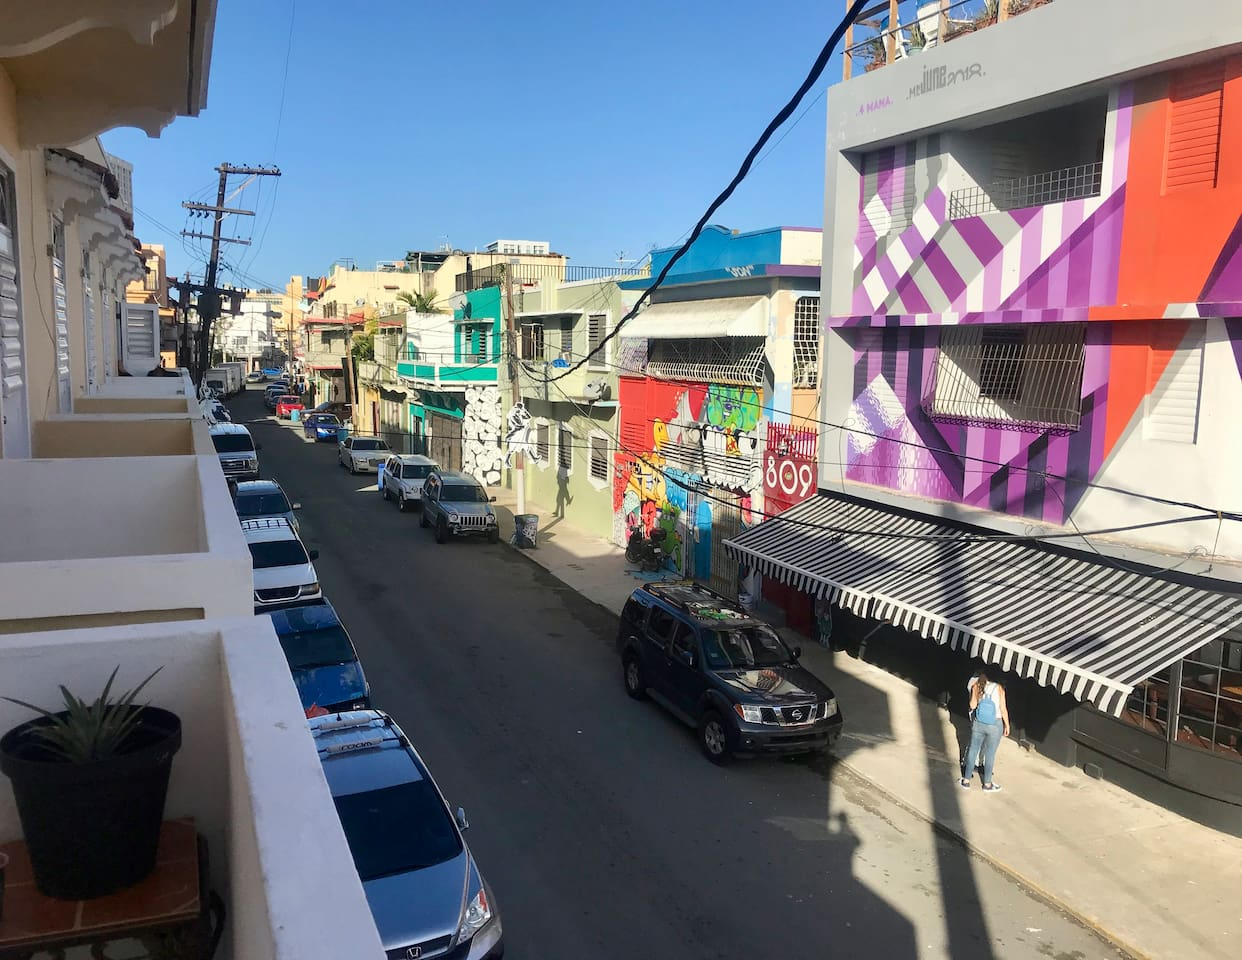 Street view from the balcony